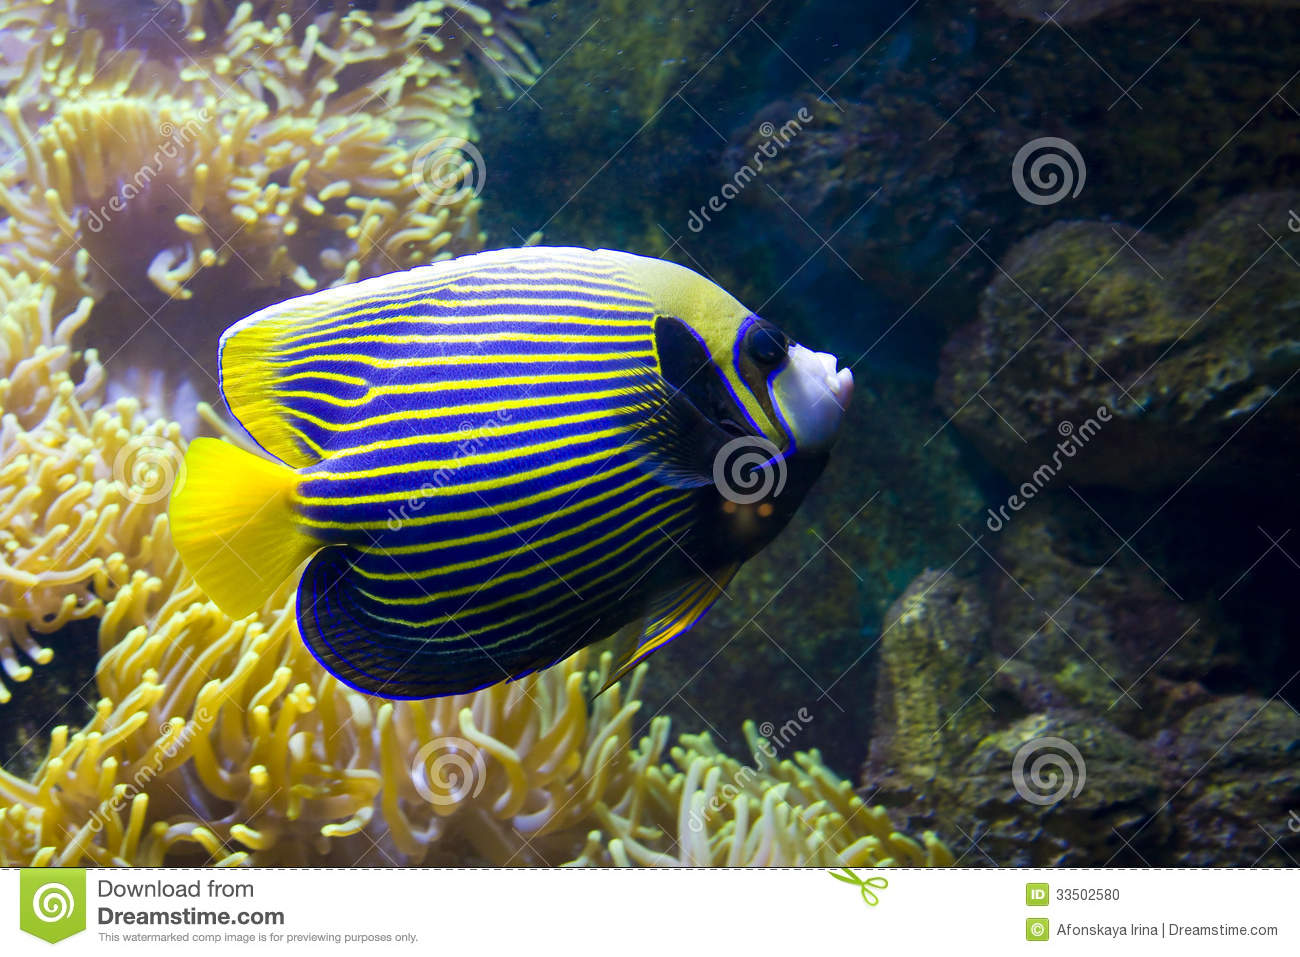 Fish angel fish emperor and actinia sea anemone stock for Ocean fish names